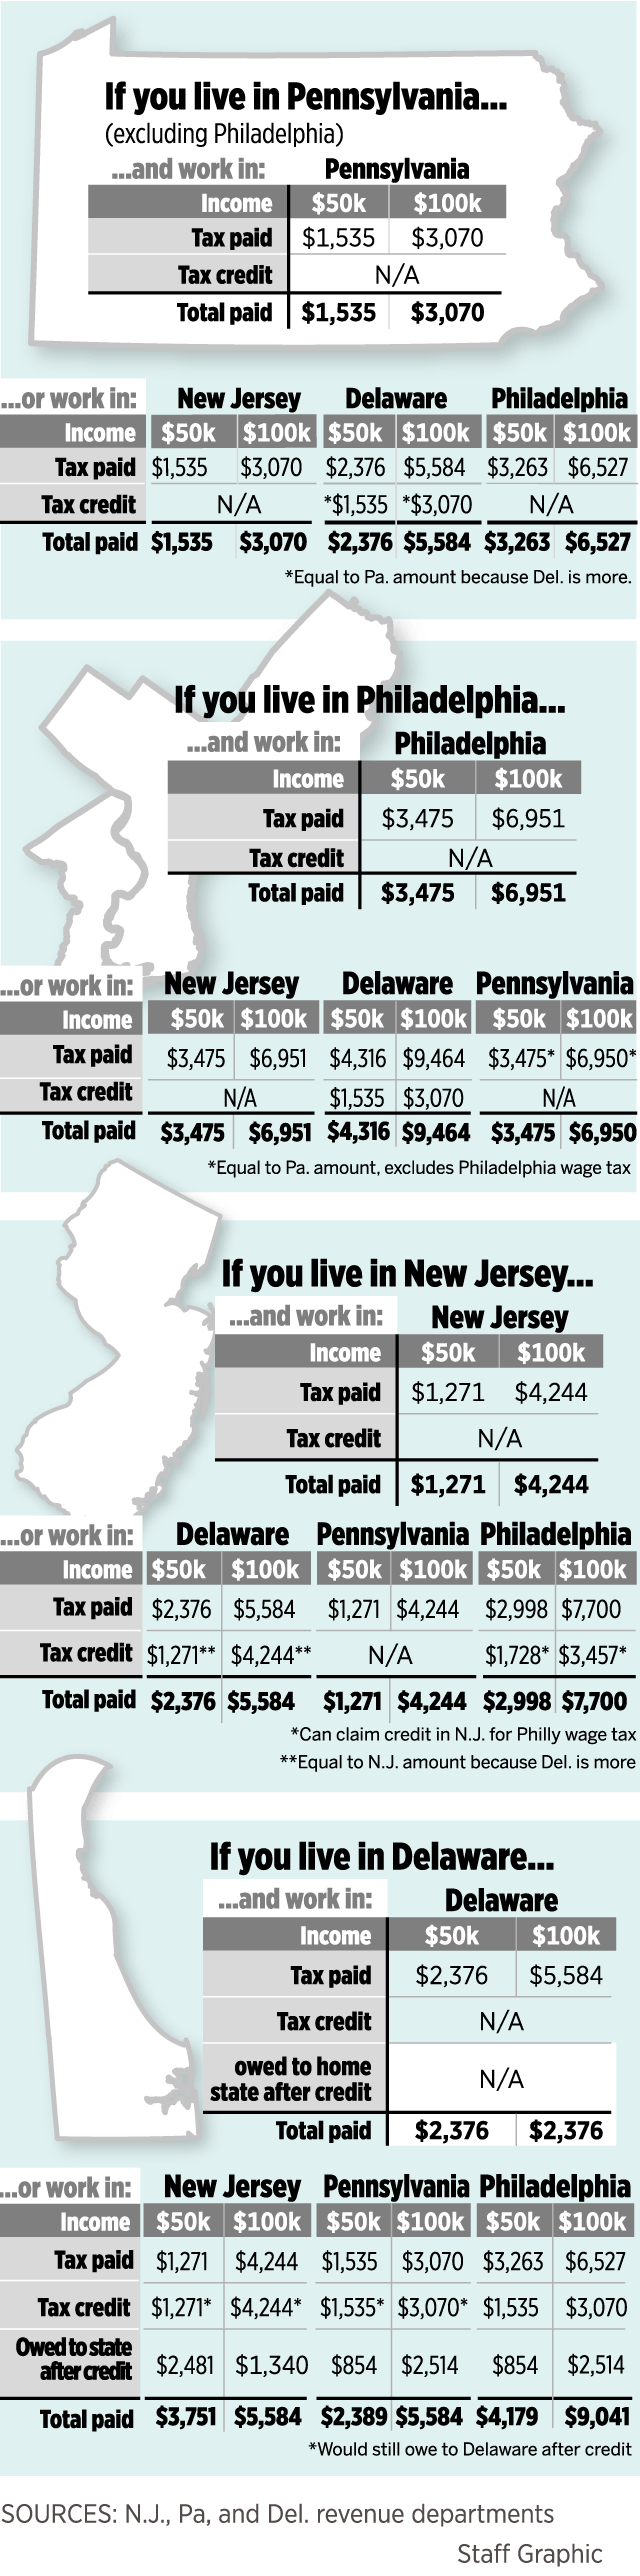 How much does it cost — or save — workers to commute across state lines?